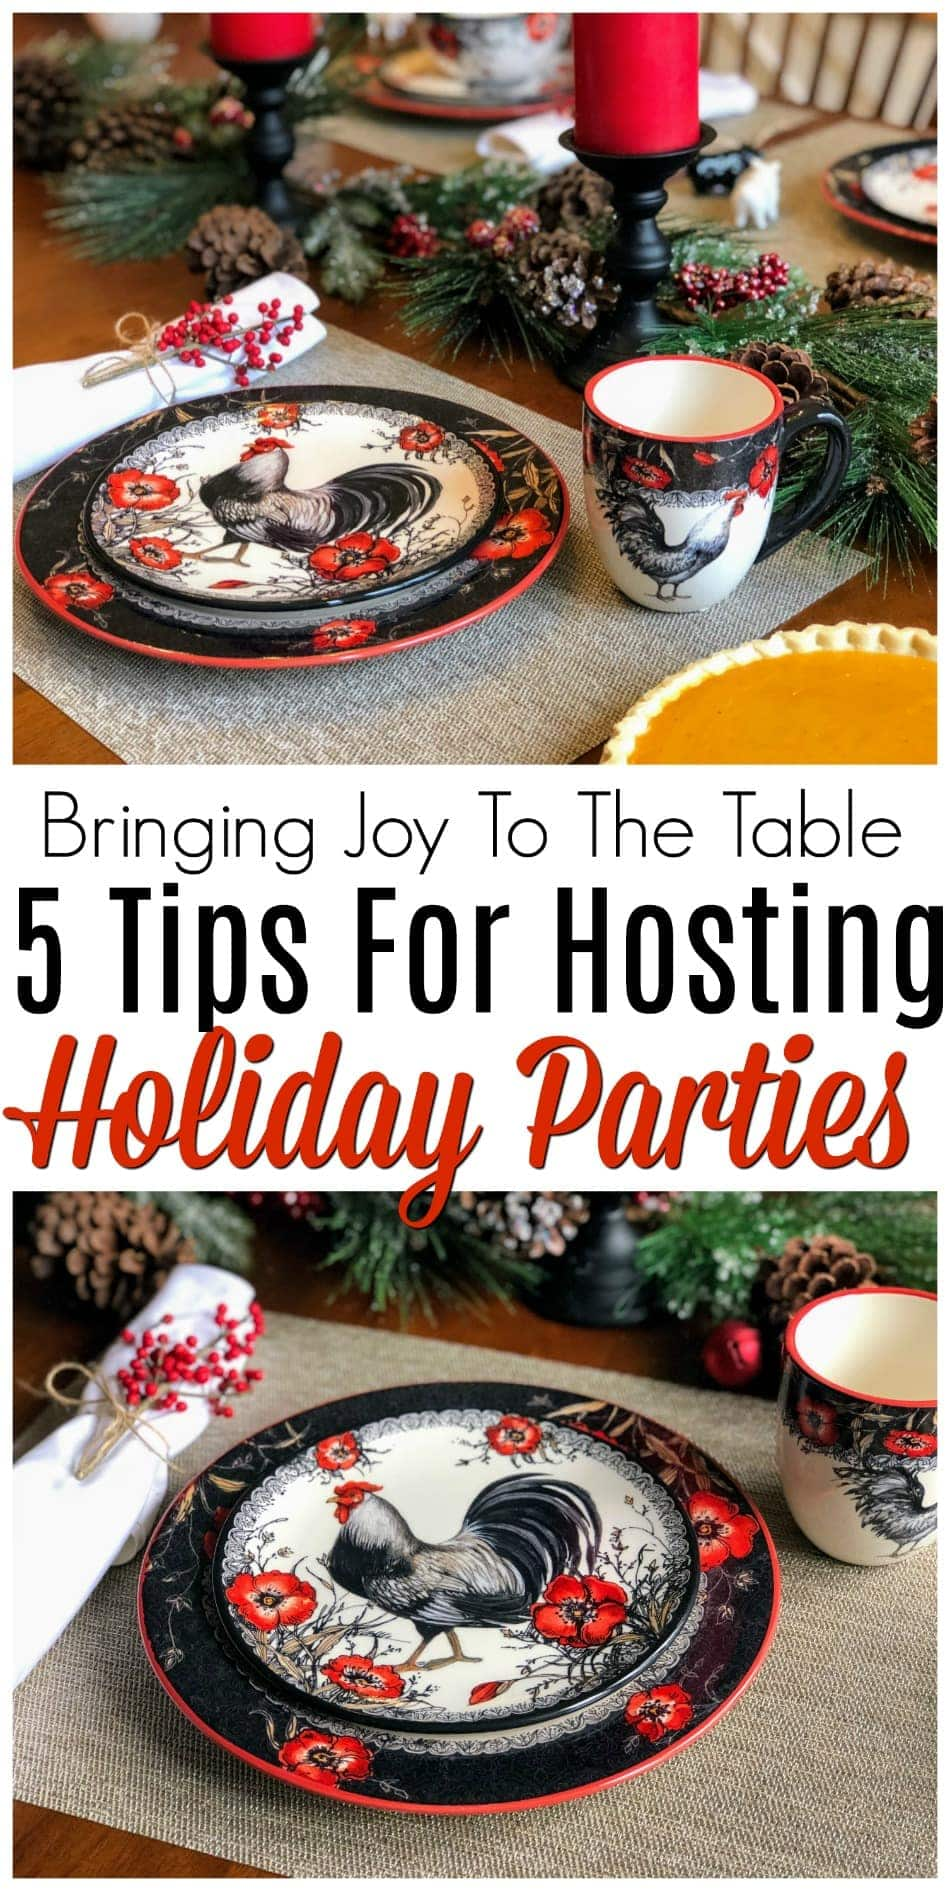 Are you hosting a holiday party this year? Holidays can be stressful, but they don't have to be! These five tips will help make your holidays hassle-free. #ad #JoyToTheTable #CrackerBarrel @CrackerBarrel https://www.southernfamilyfun.com/hosting-holiday-party-without-hassle/